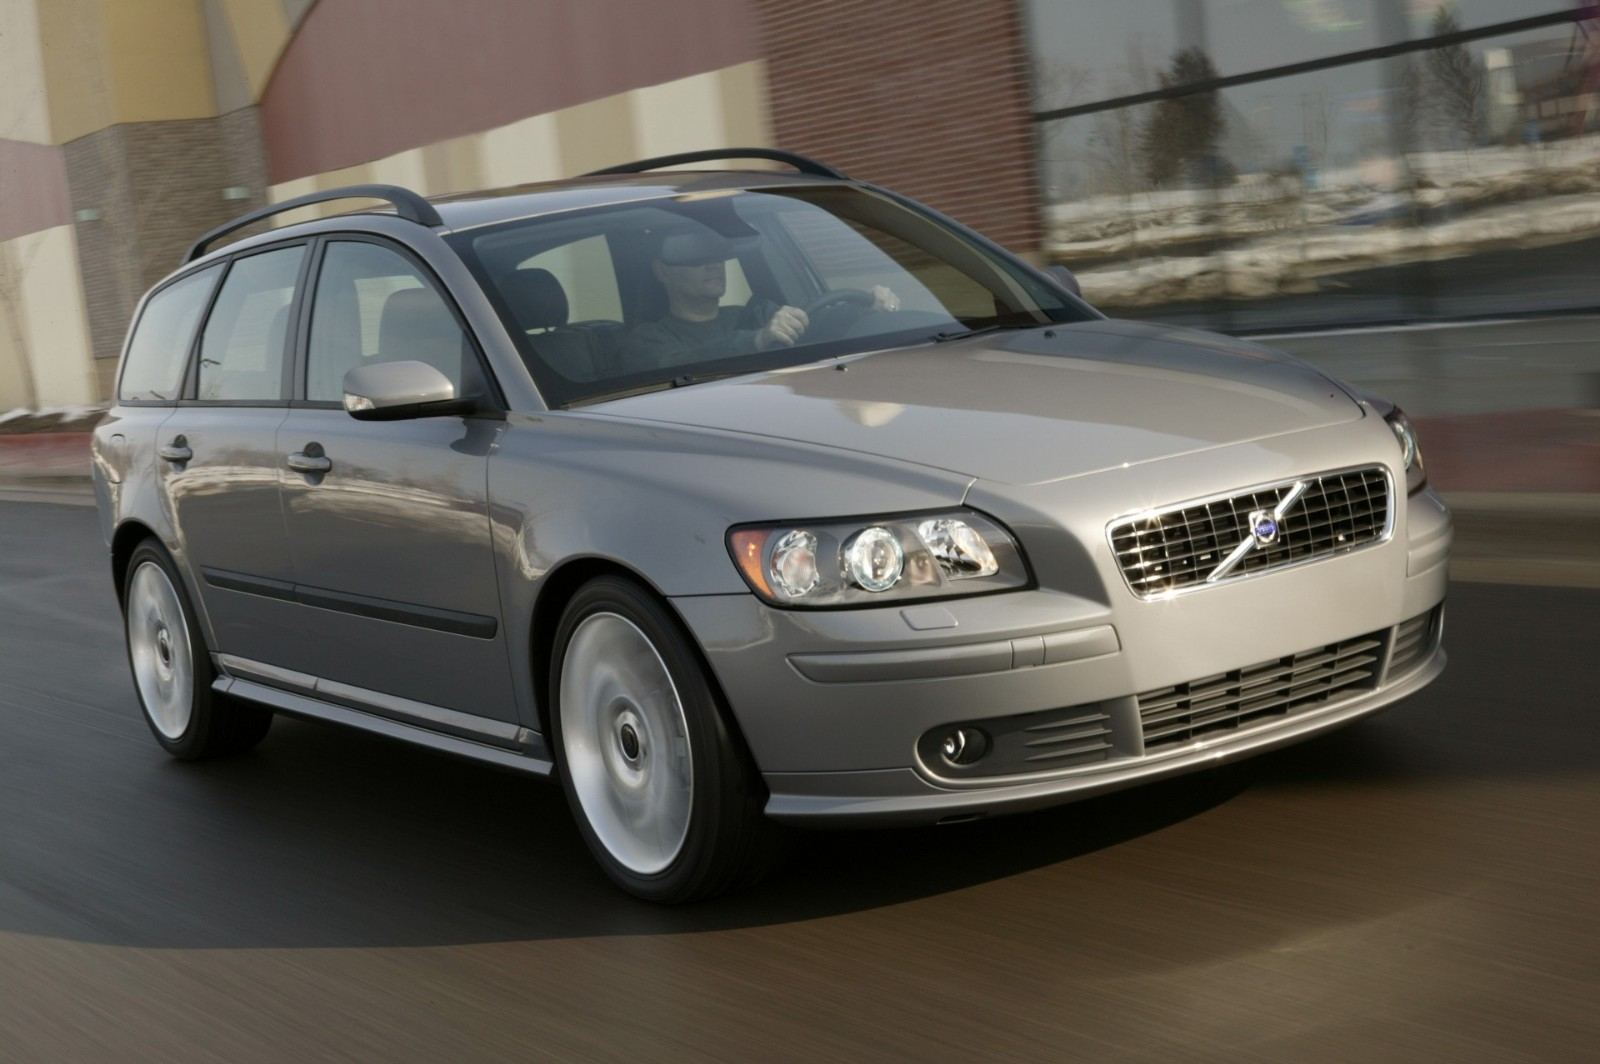 2007 Volvo V50 Wagon 5-door